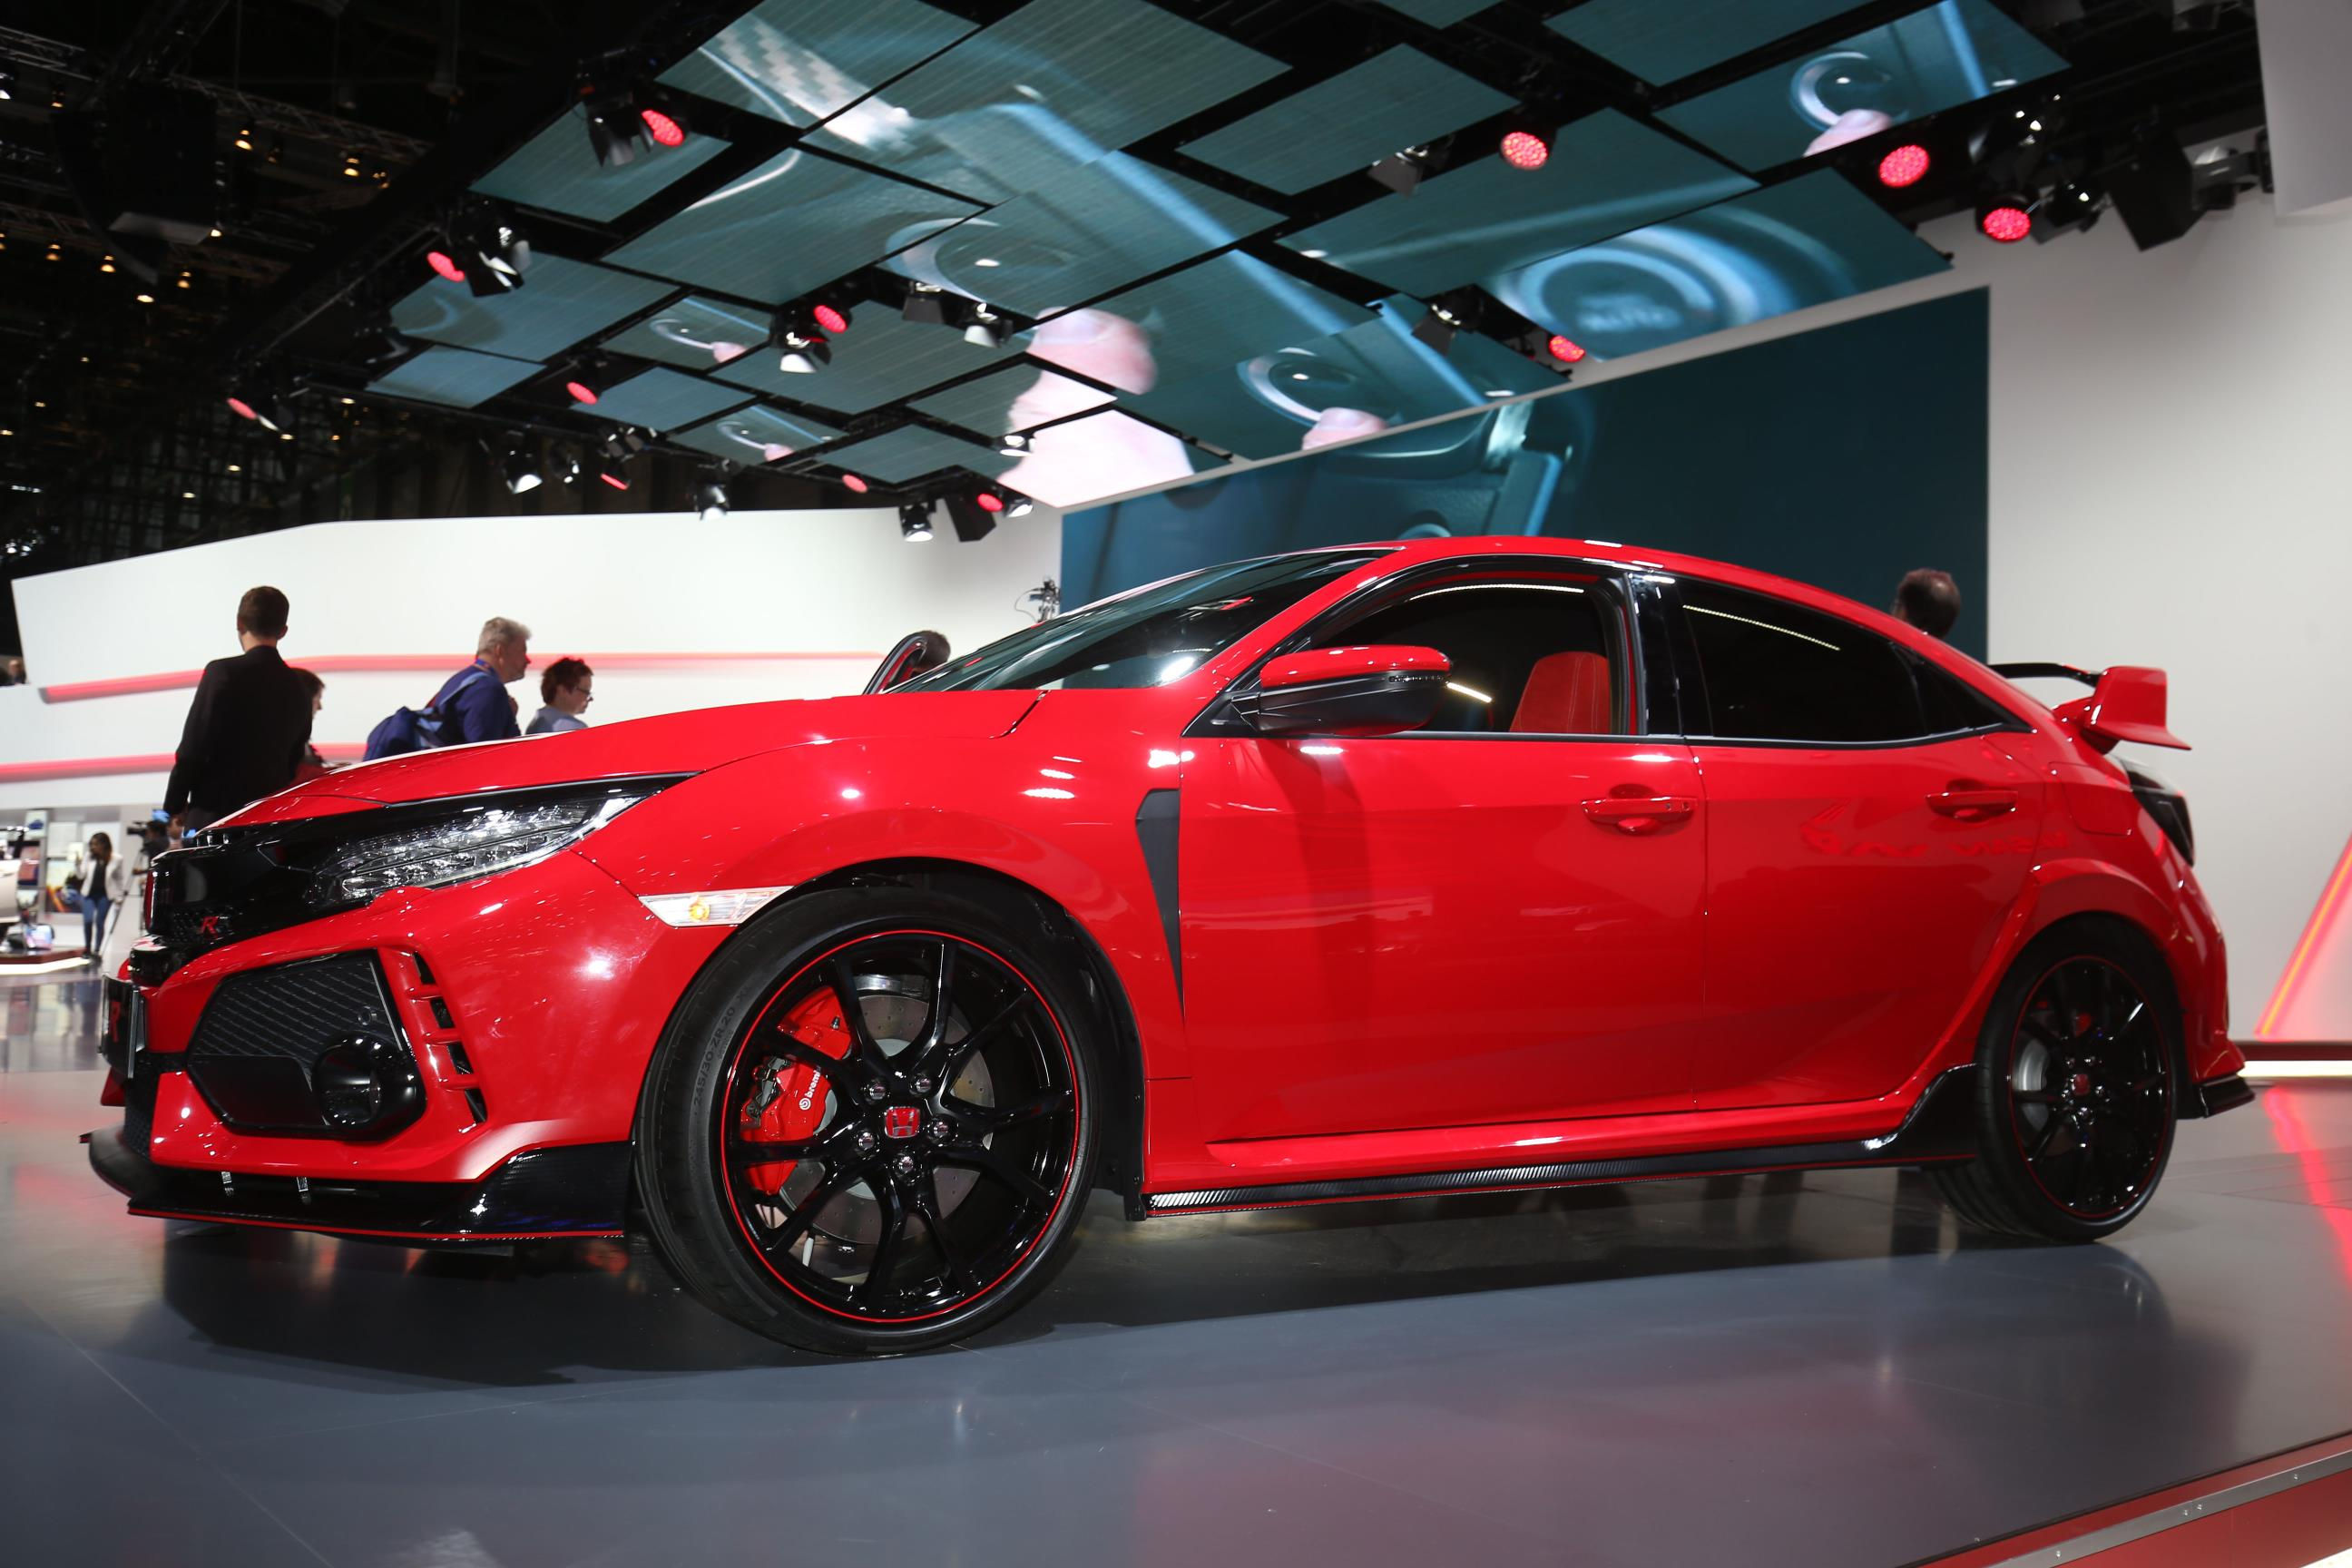 2018 honda civic type r makes production debut in geneva for Buy honda civic type r